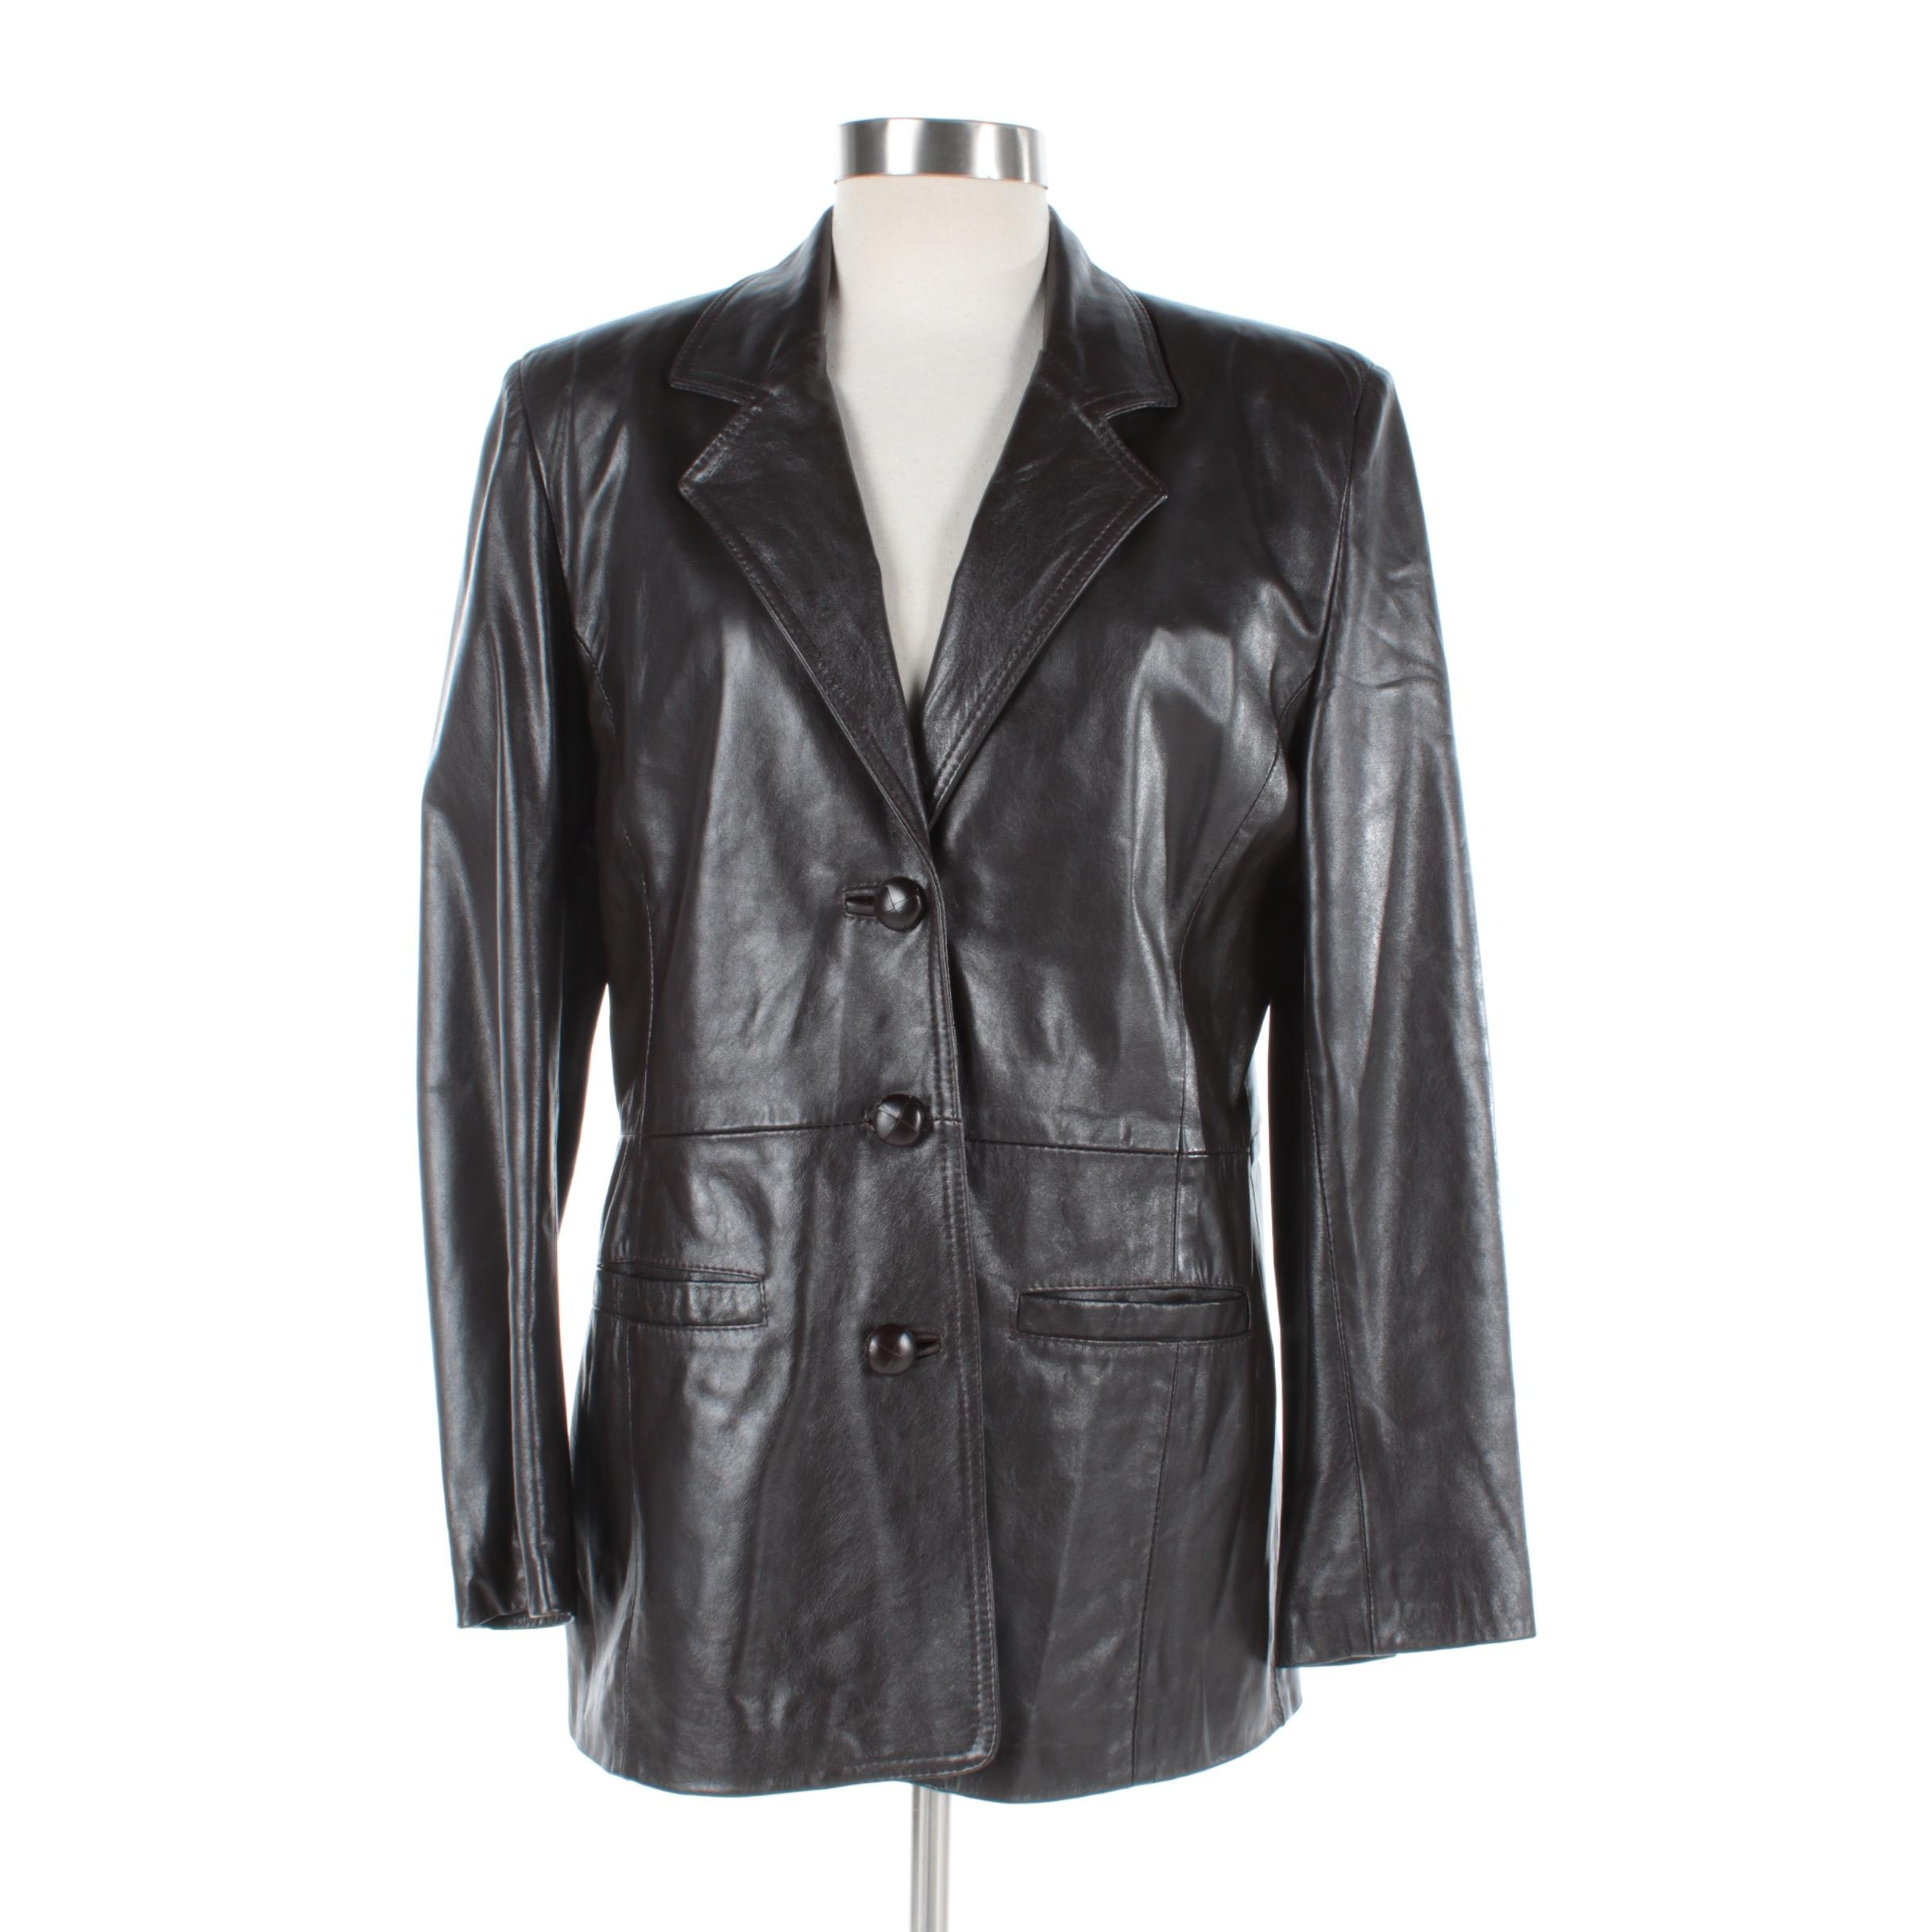 Women's G.V. Creazioni Black Leather Single-Breasted Jacket